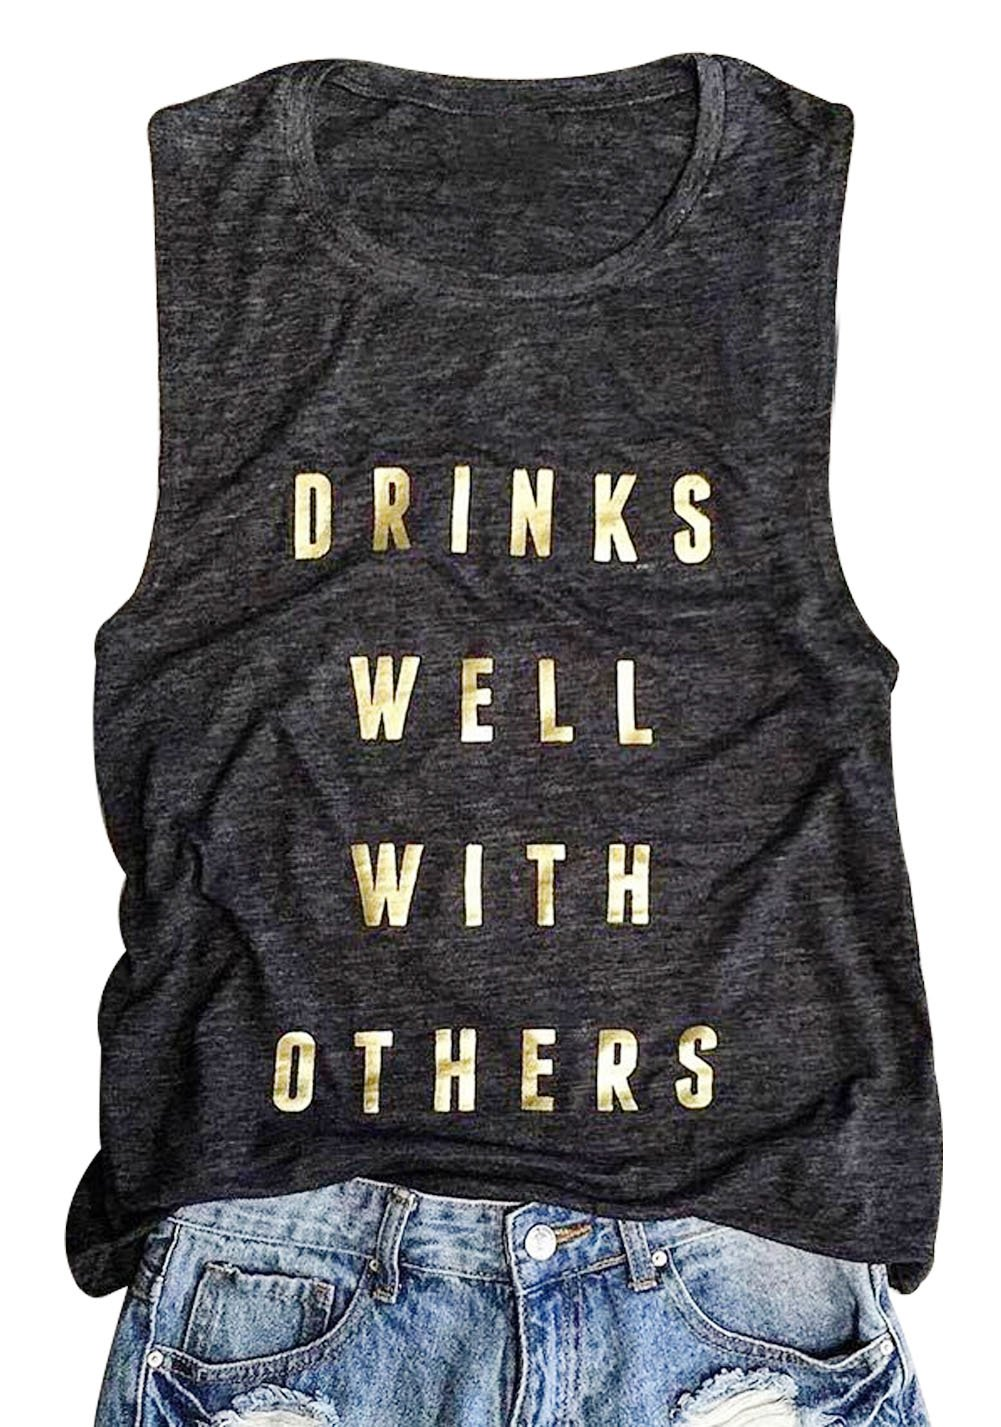 MNLYBABY Women Casual Drinkerbell Fairy Tank Top Sleeveless Funny T-Shirt Size M (Dark Grey)